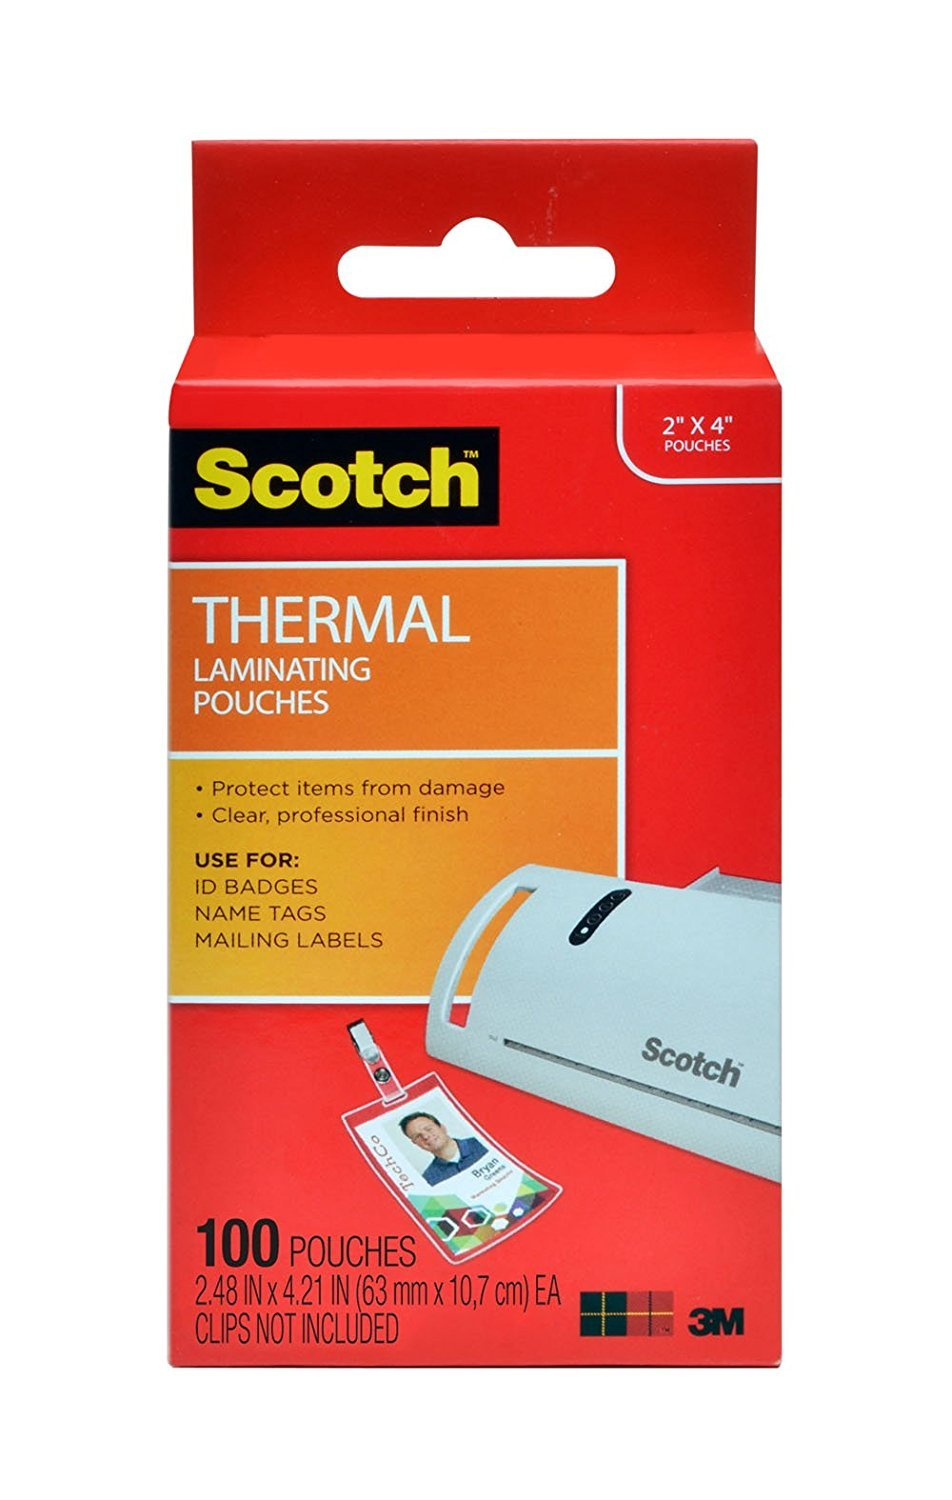 Scotch Thermal Laminating Pouches ID Badge With Clip, 2.4 Inches x 4.2 Inches, 10 Pouches (TP5852-10) 500-Pouches by Scotch